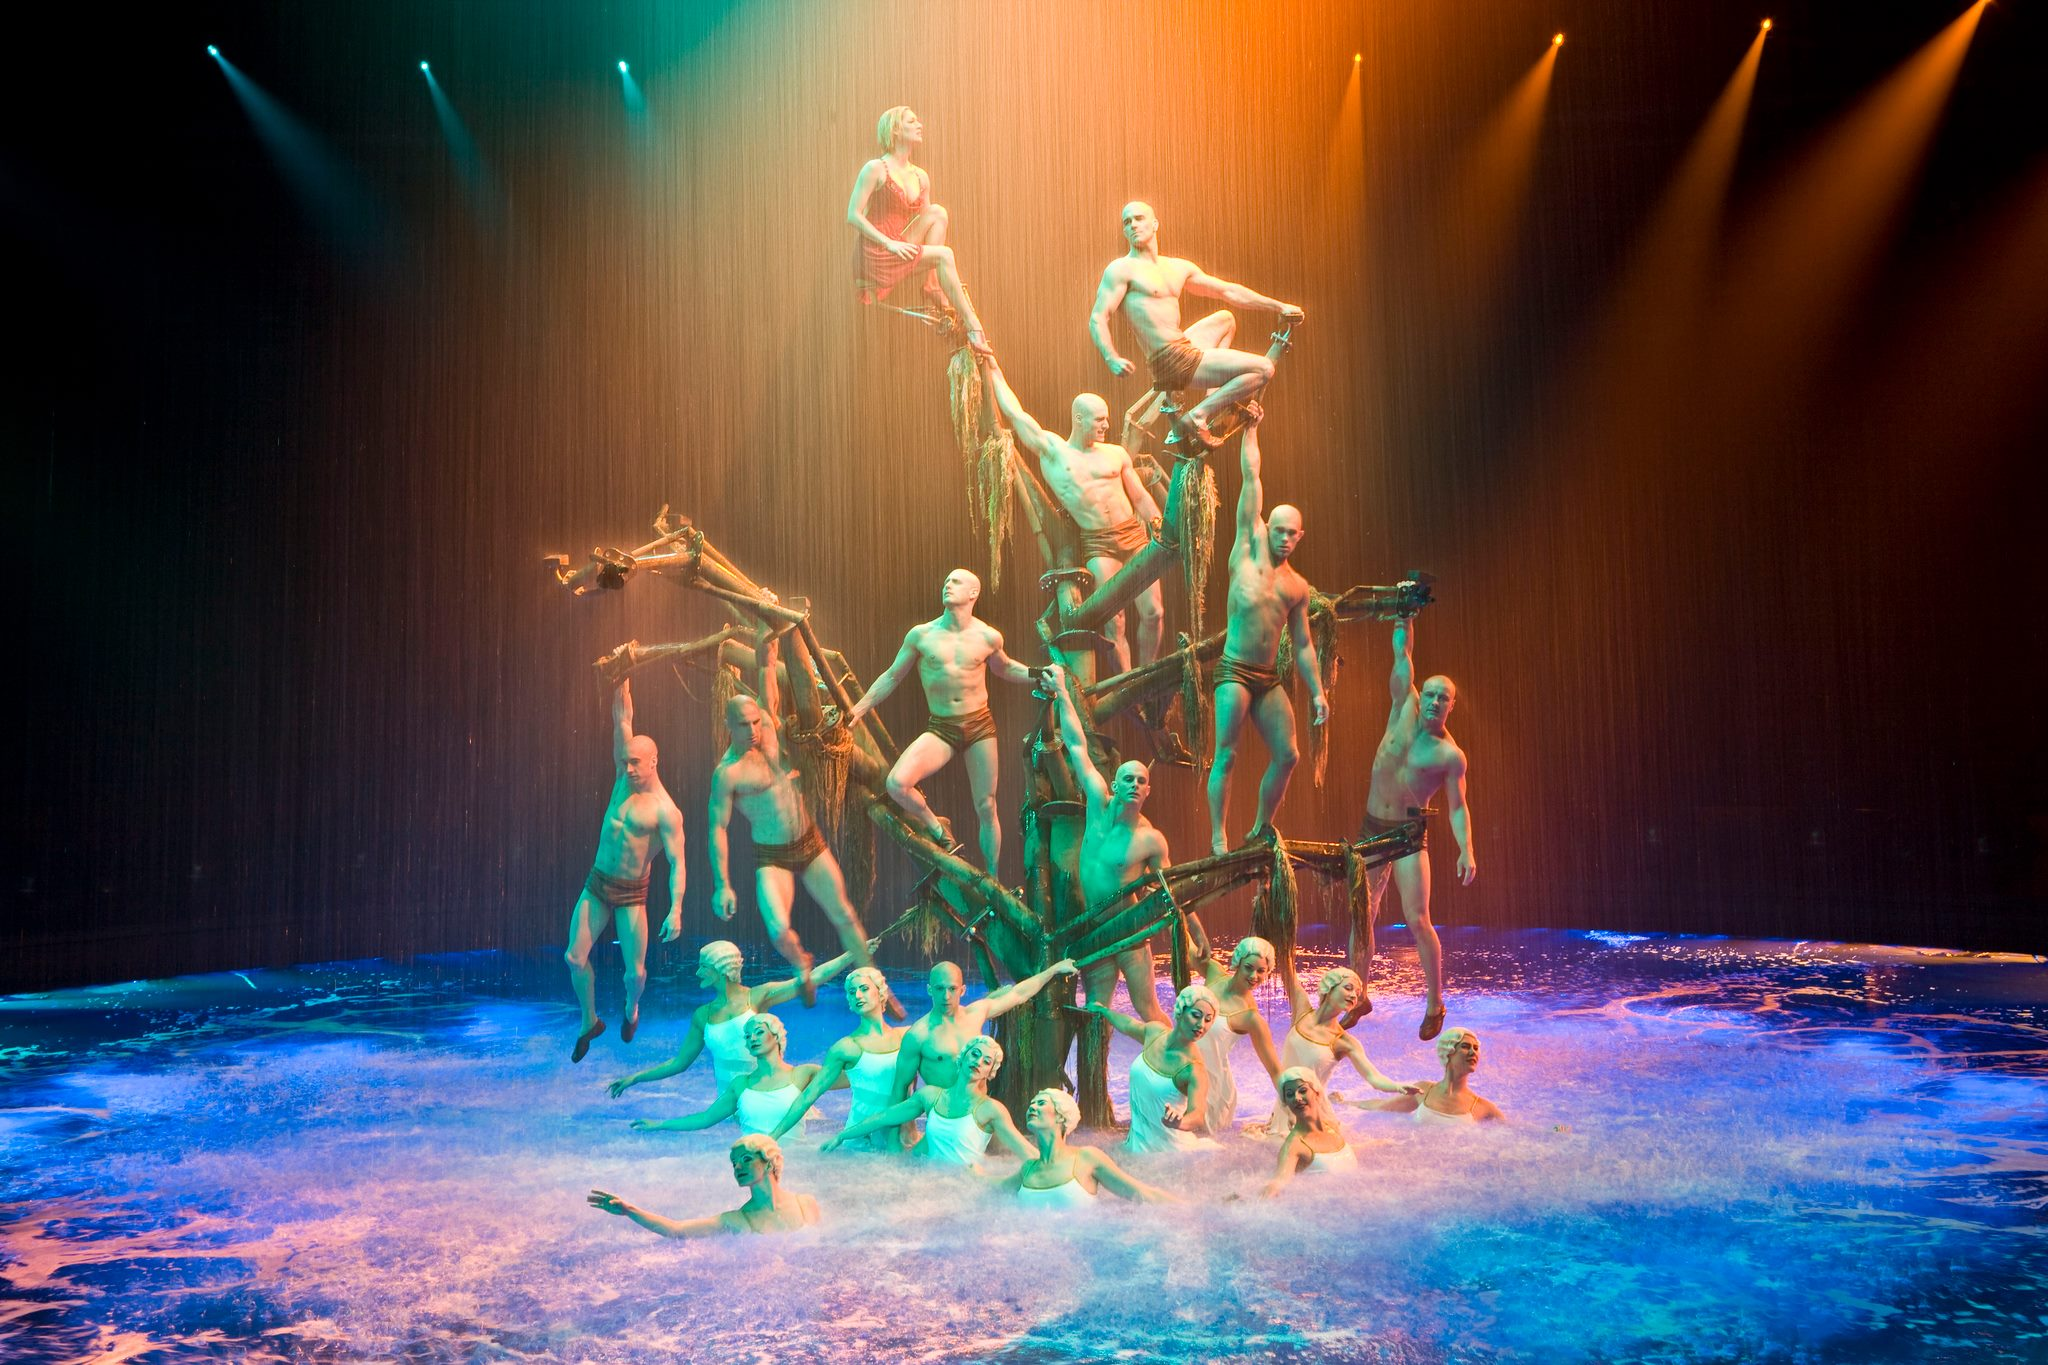 Audiences will now have the chance to go backstage at Le Rêve.